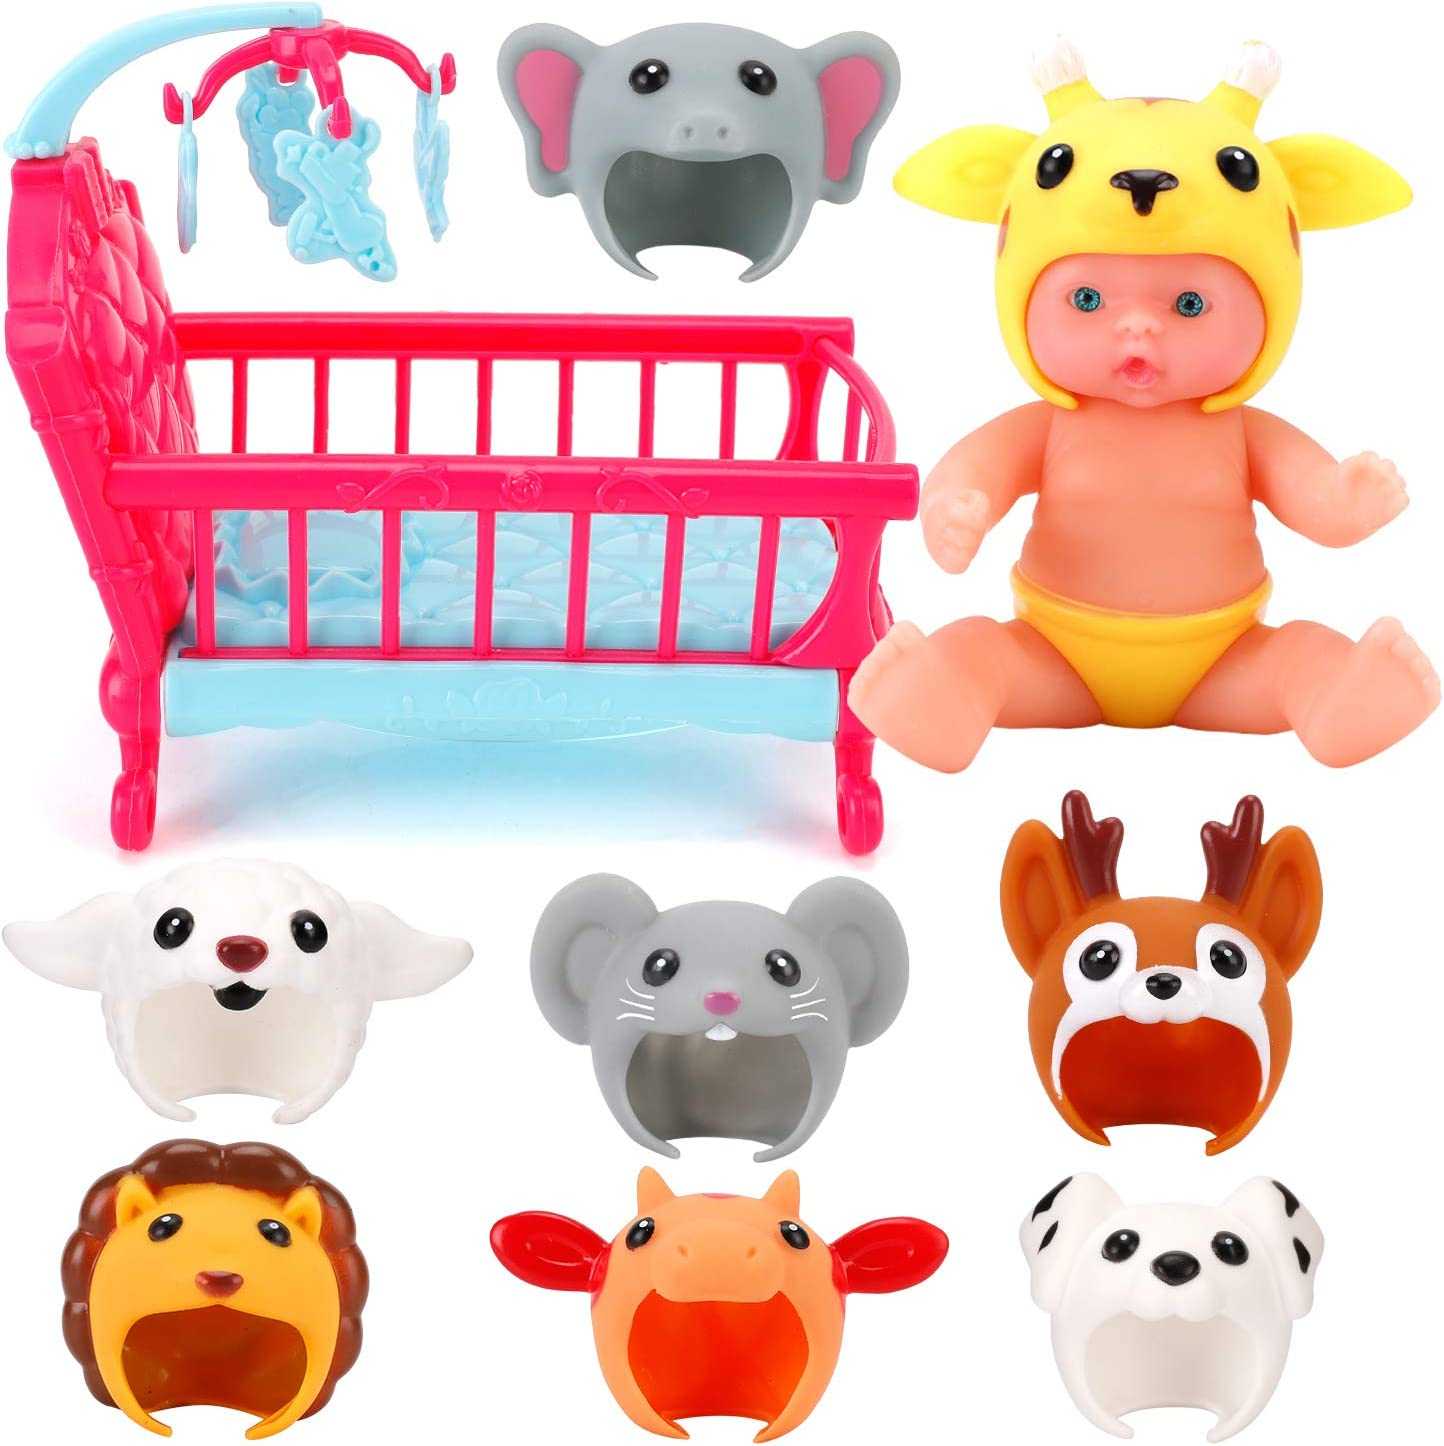 National uniform free shipping Liberty Imports 7-inch My Sweet Mini Baby Doll Animal Max 55% OFF Frien with